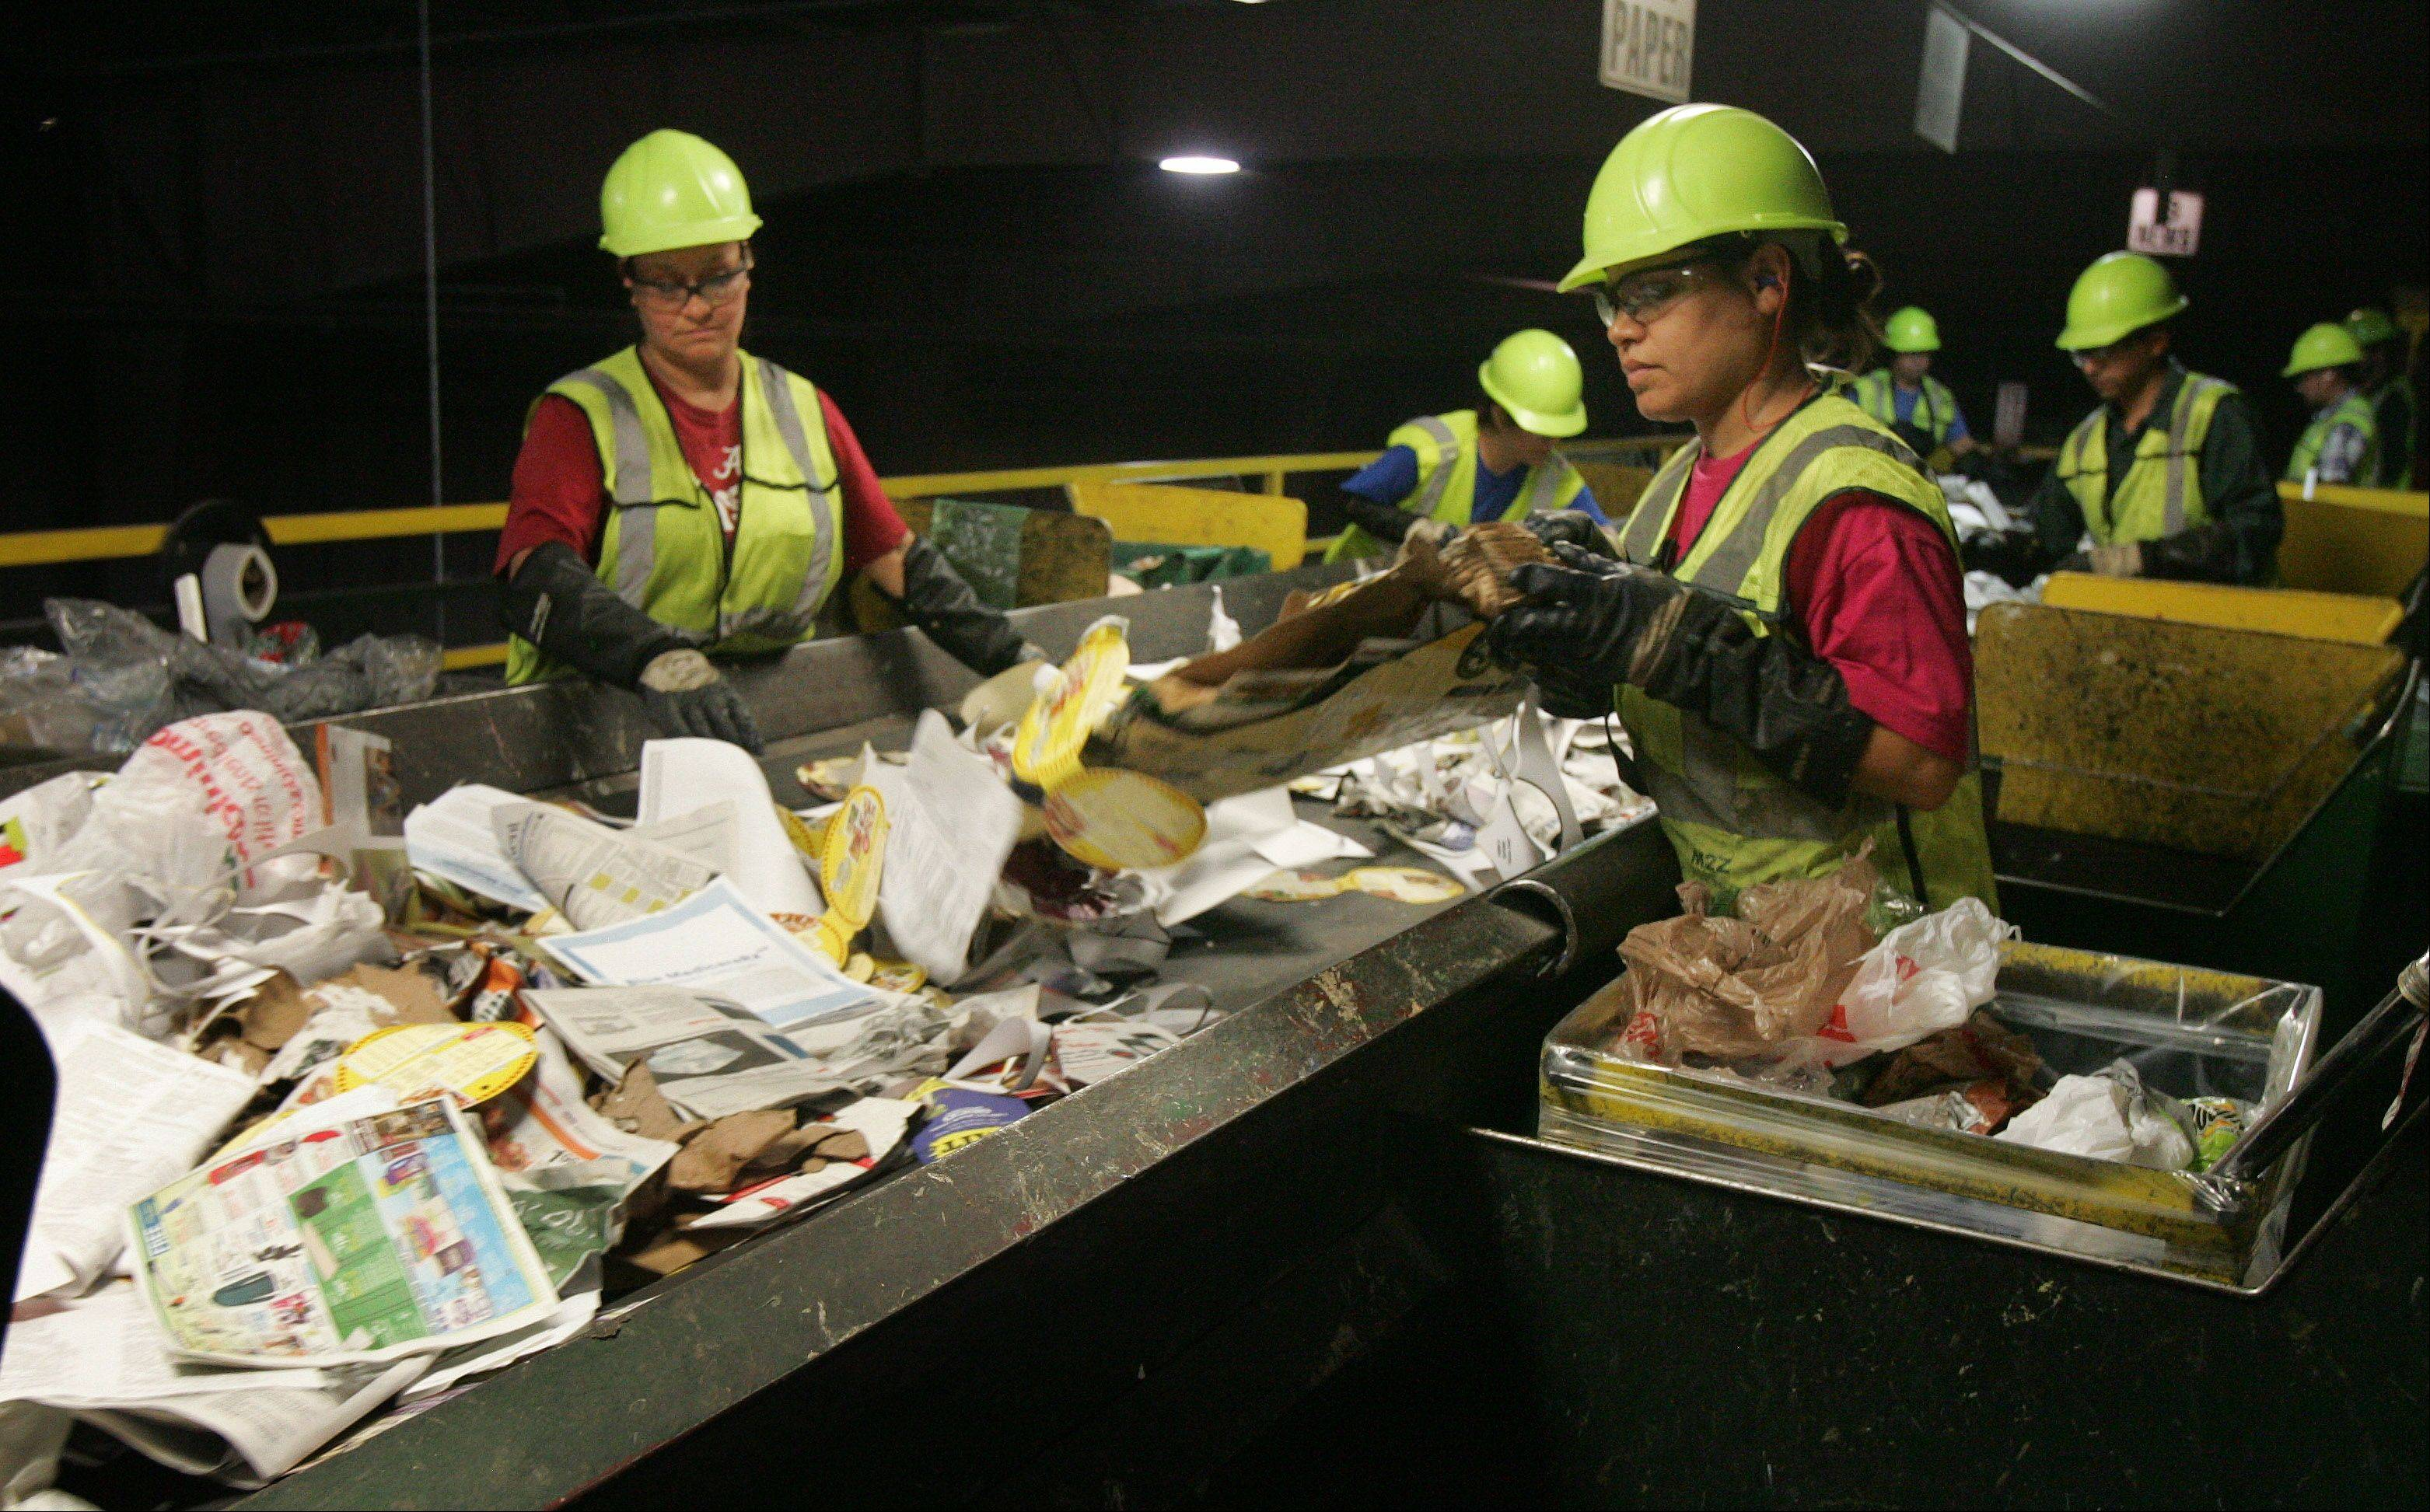 Workers at the Waste Management Recovery Facility in Grayslake separate materials to be recycled.